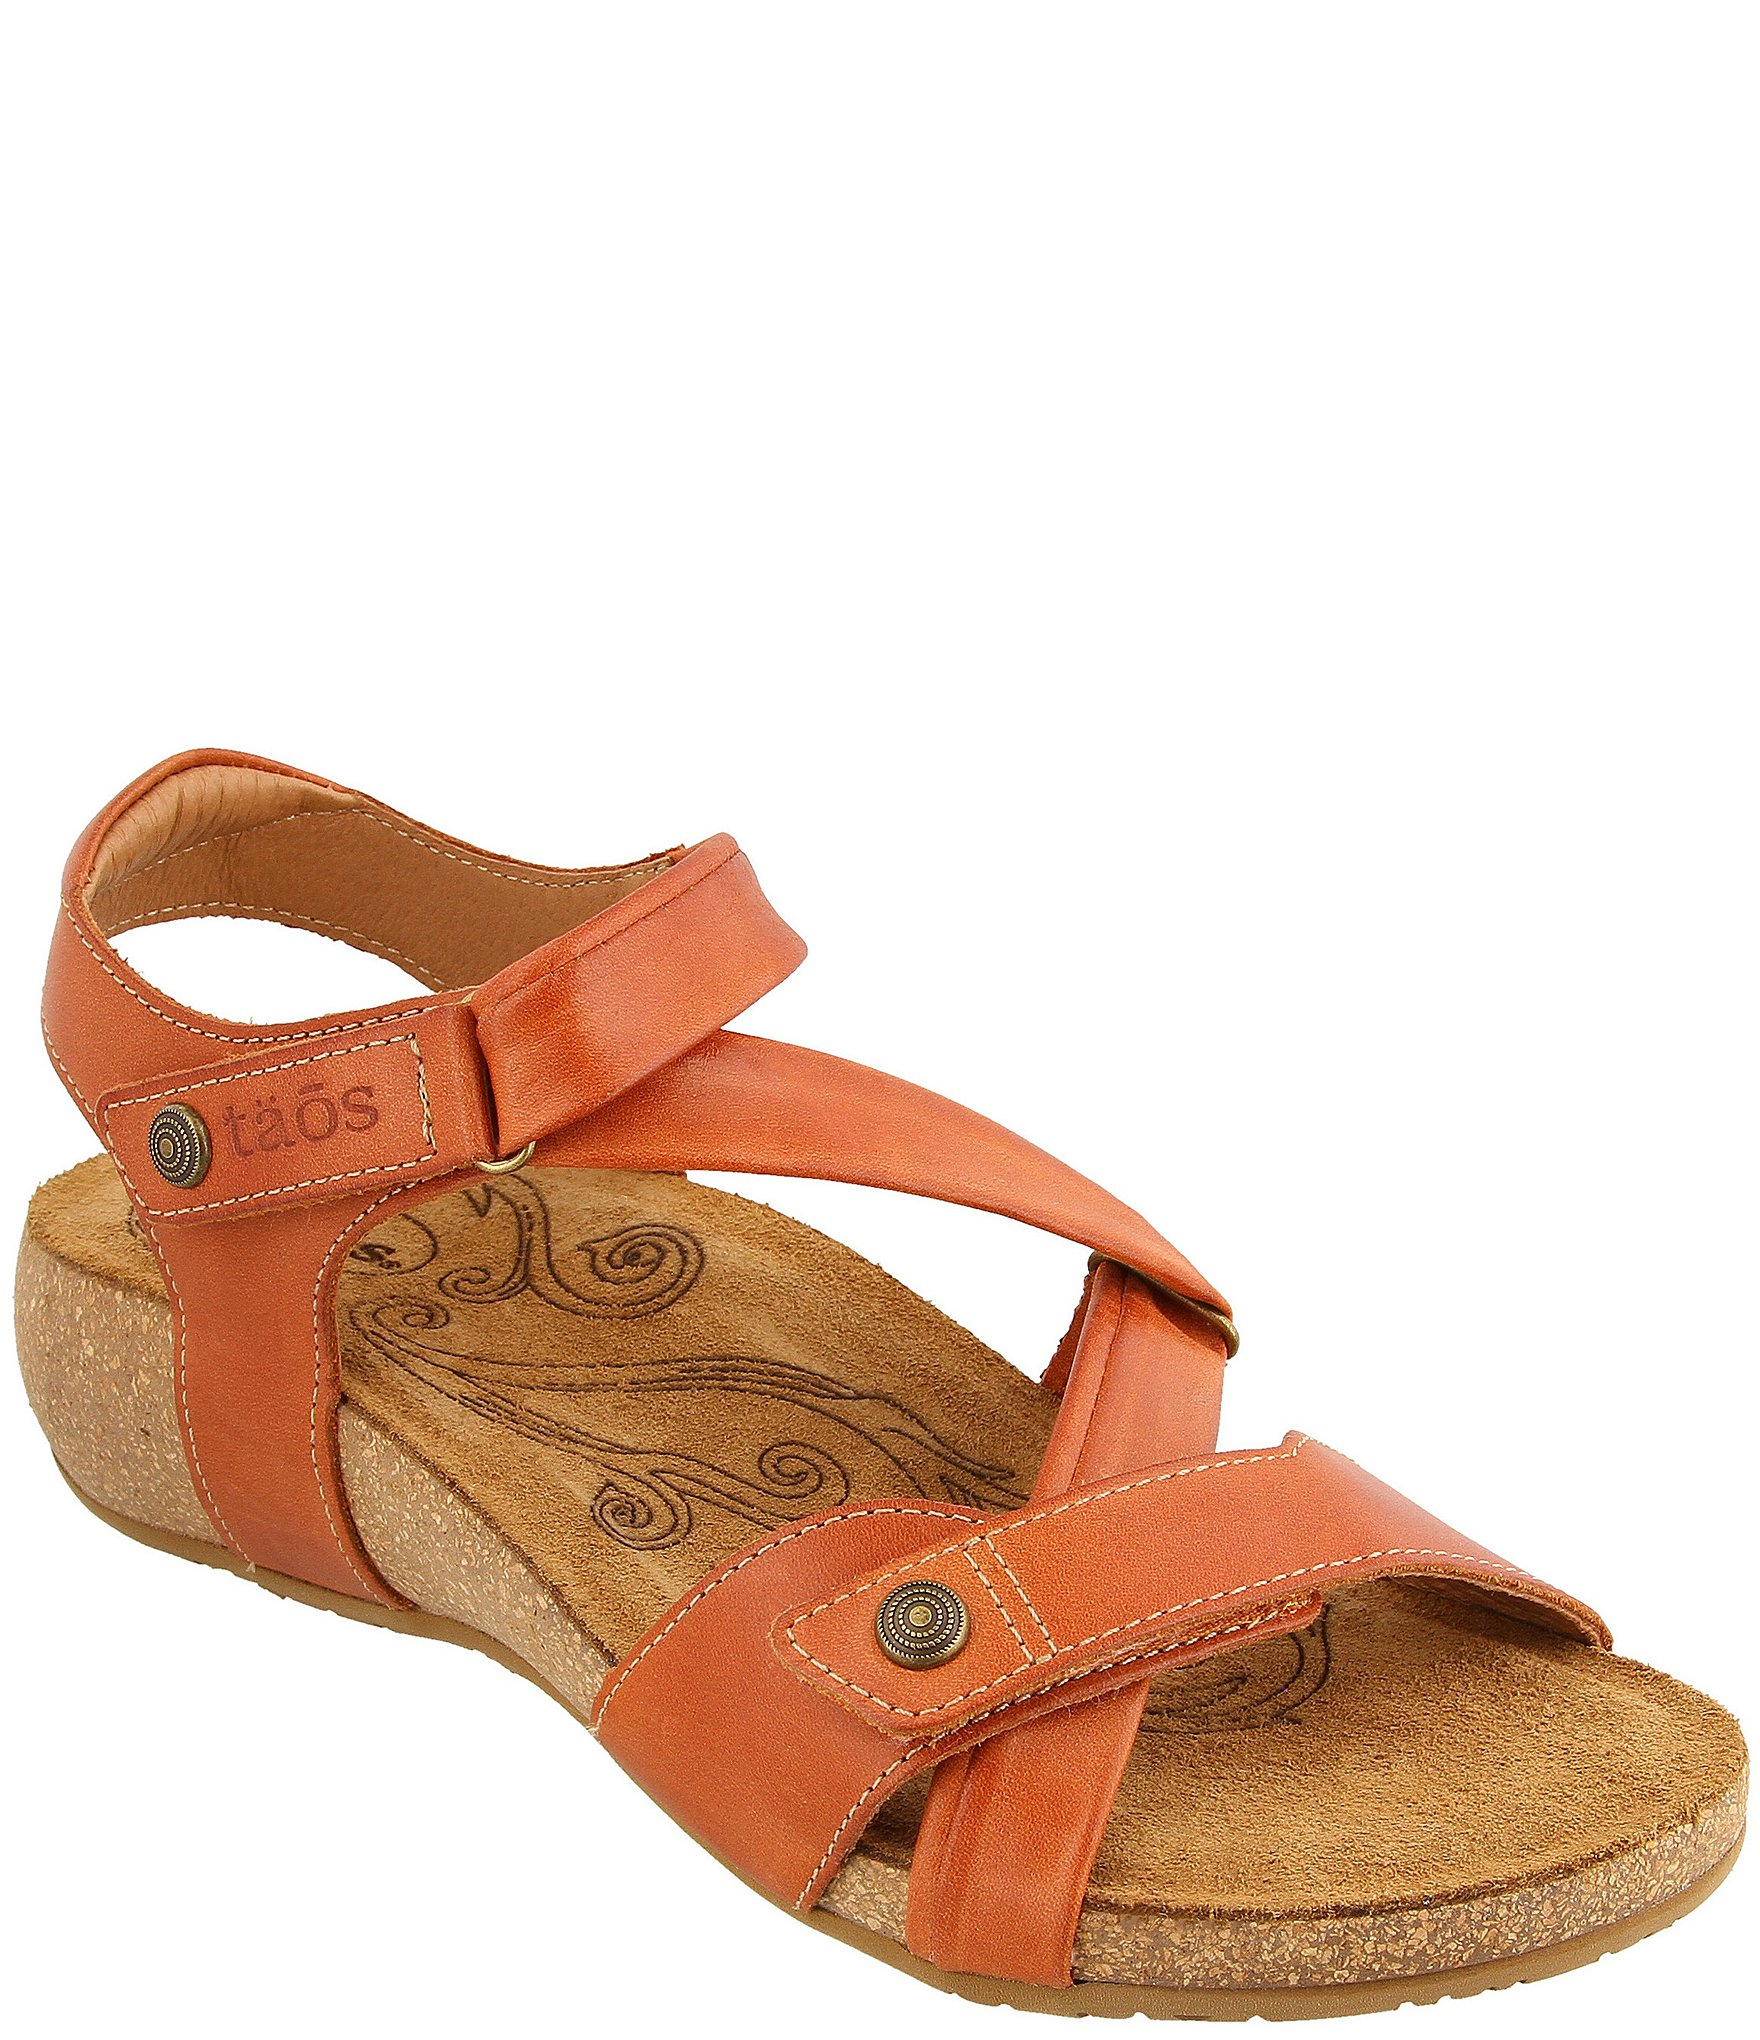 Taos Footwear Universe Banded Leather